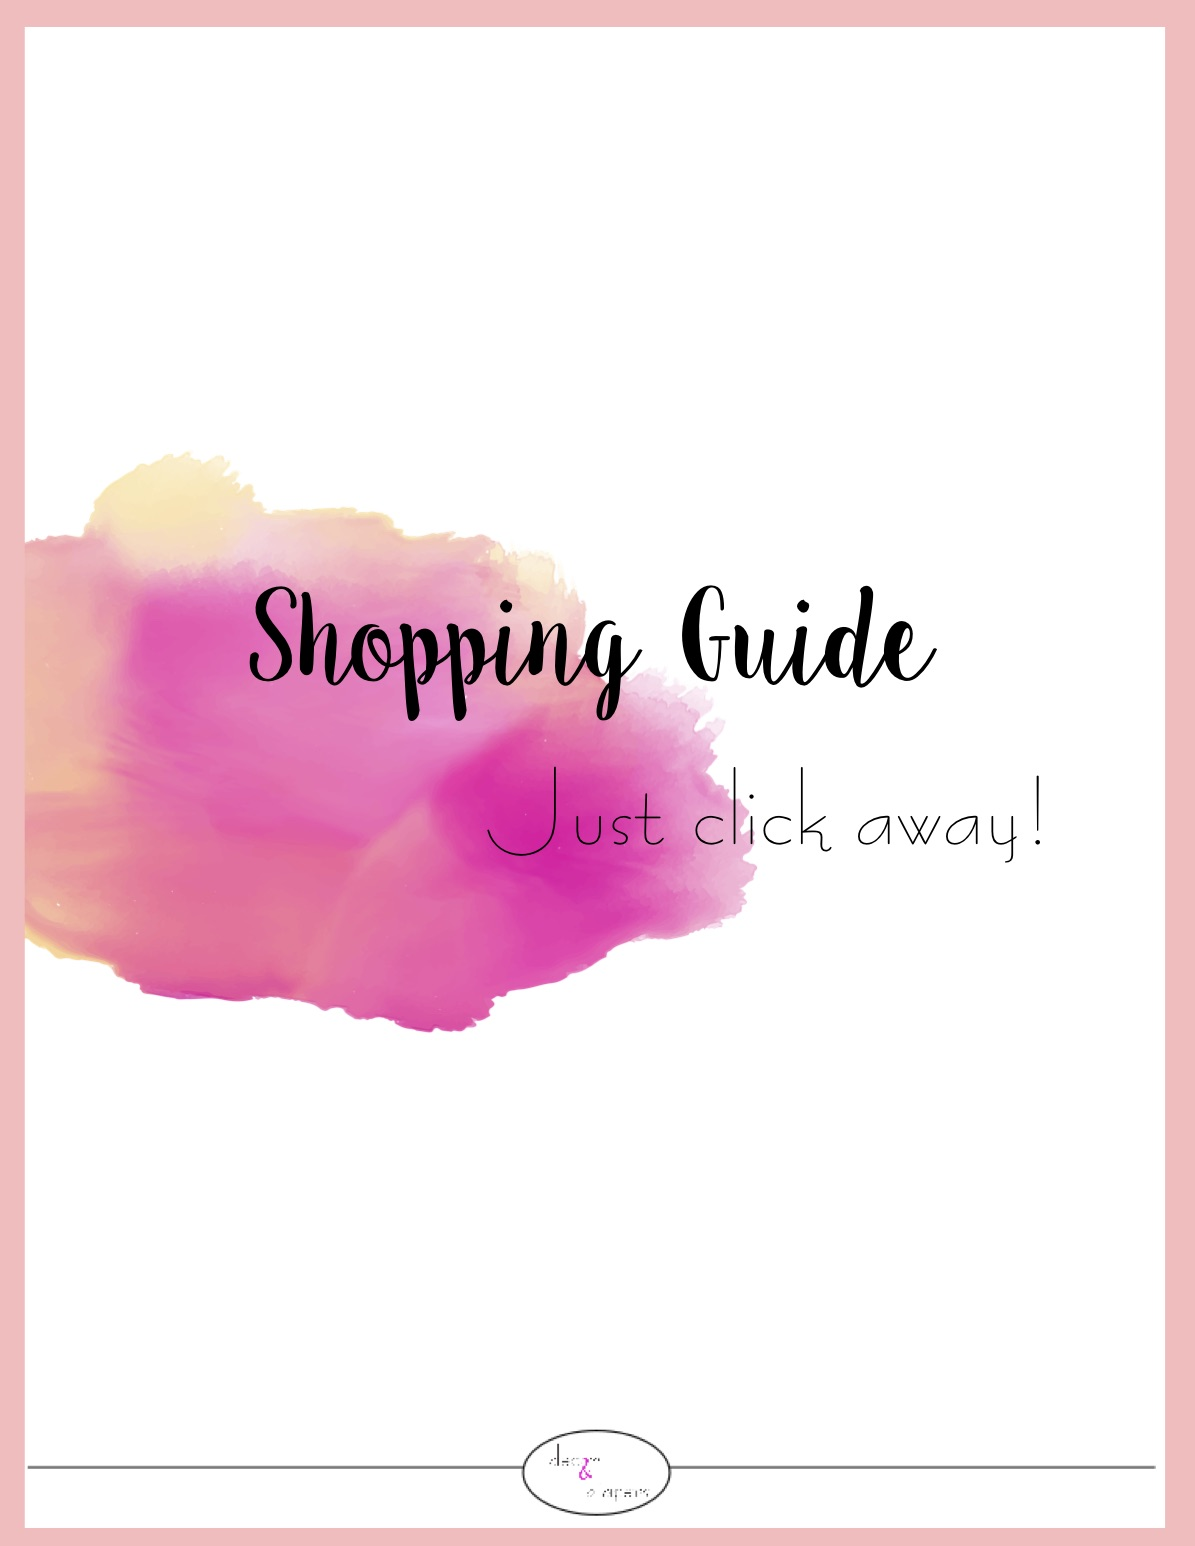 Shopping Guide - An easy-to-use form to purchase your new room- YAY. Just click on the links to purchase each item online. (You can even find some items at your local retailer, if you feel like hopping in the car!)